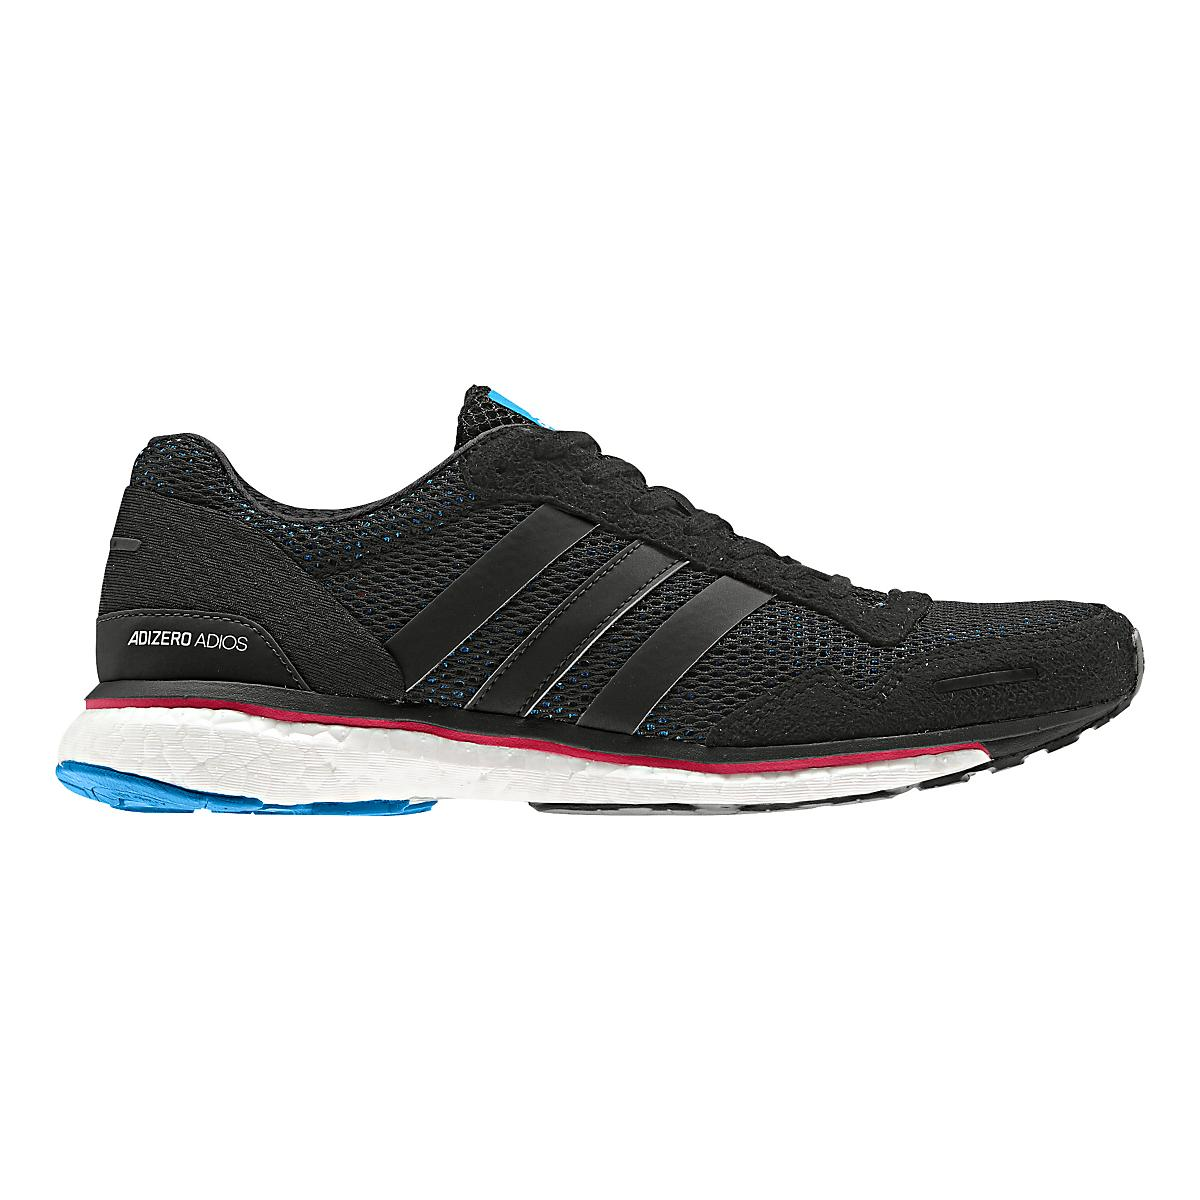 101f547084d Womens adidas Adizero Adios 3 Running Shoe at Road Runner Sports